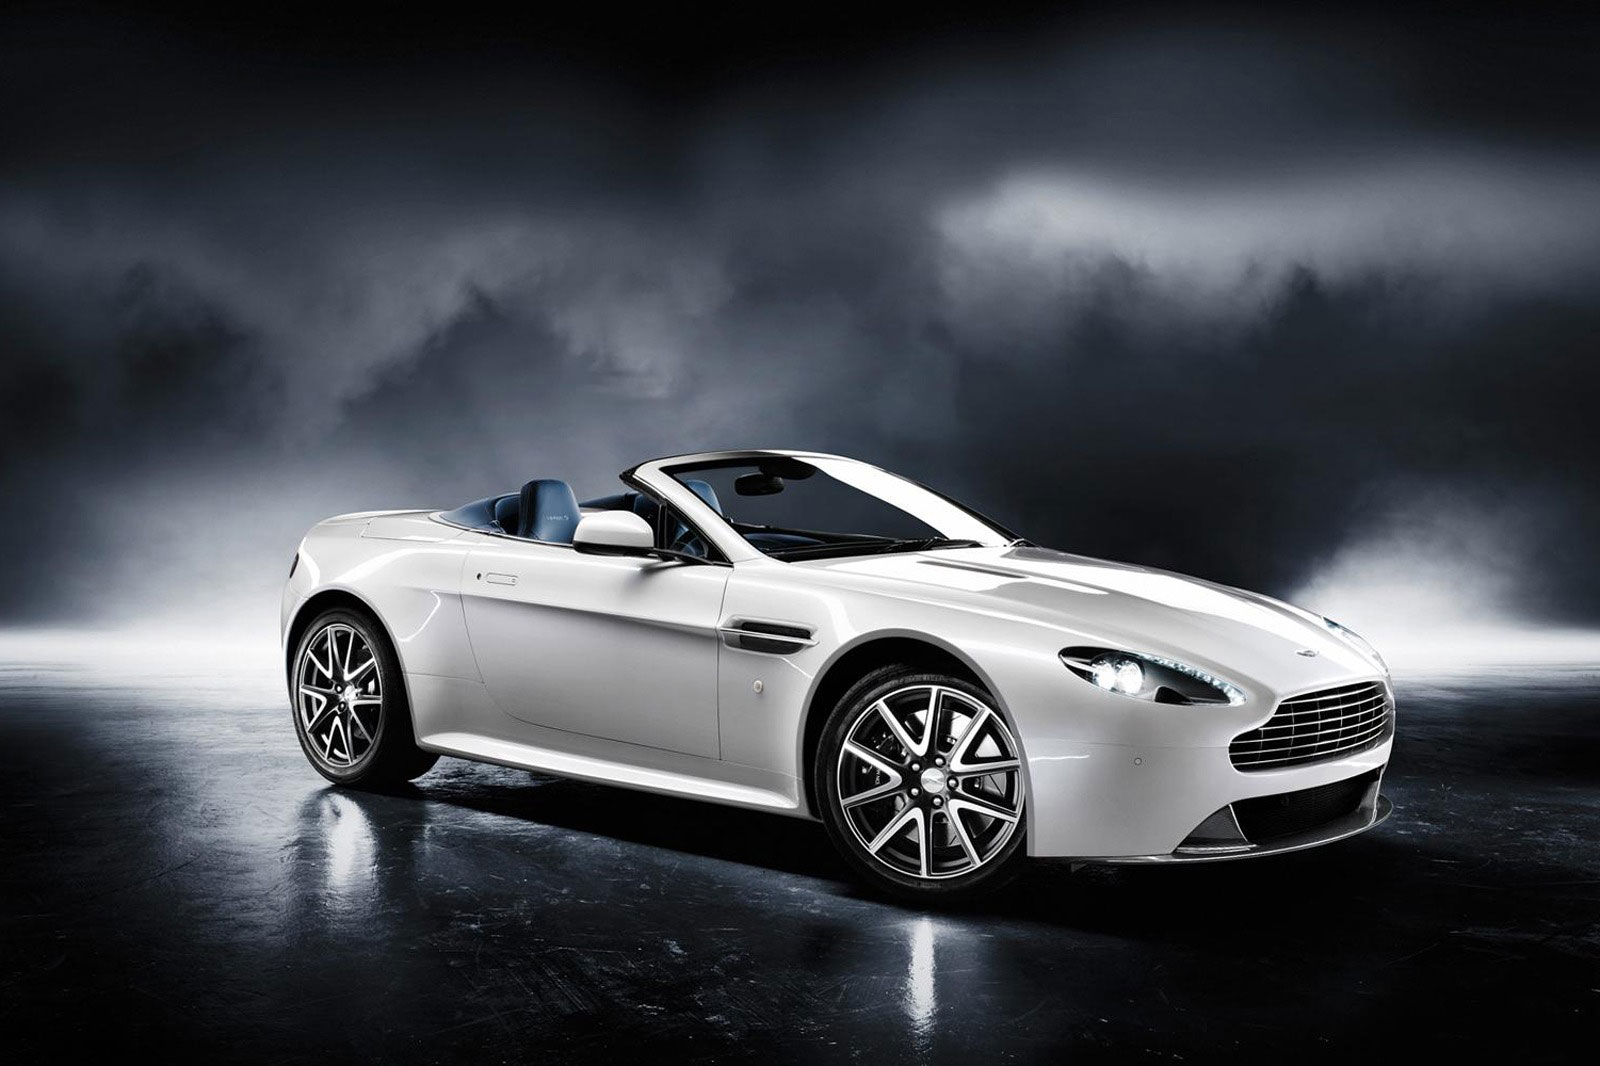 aston martin v8 vantage s a more potent edition of the v8 vantage coupe and convertible. Black Bedroom Furniture Sets. Home Design Ideas